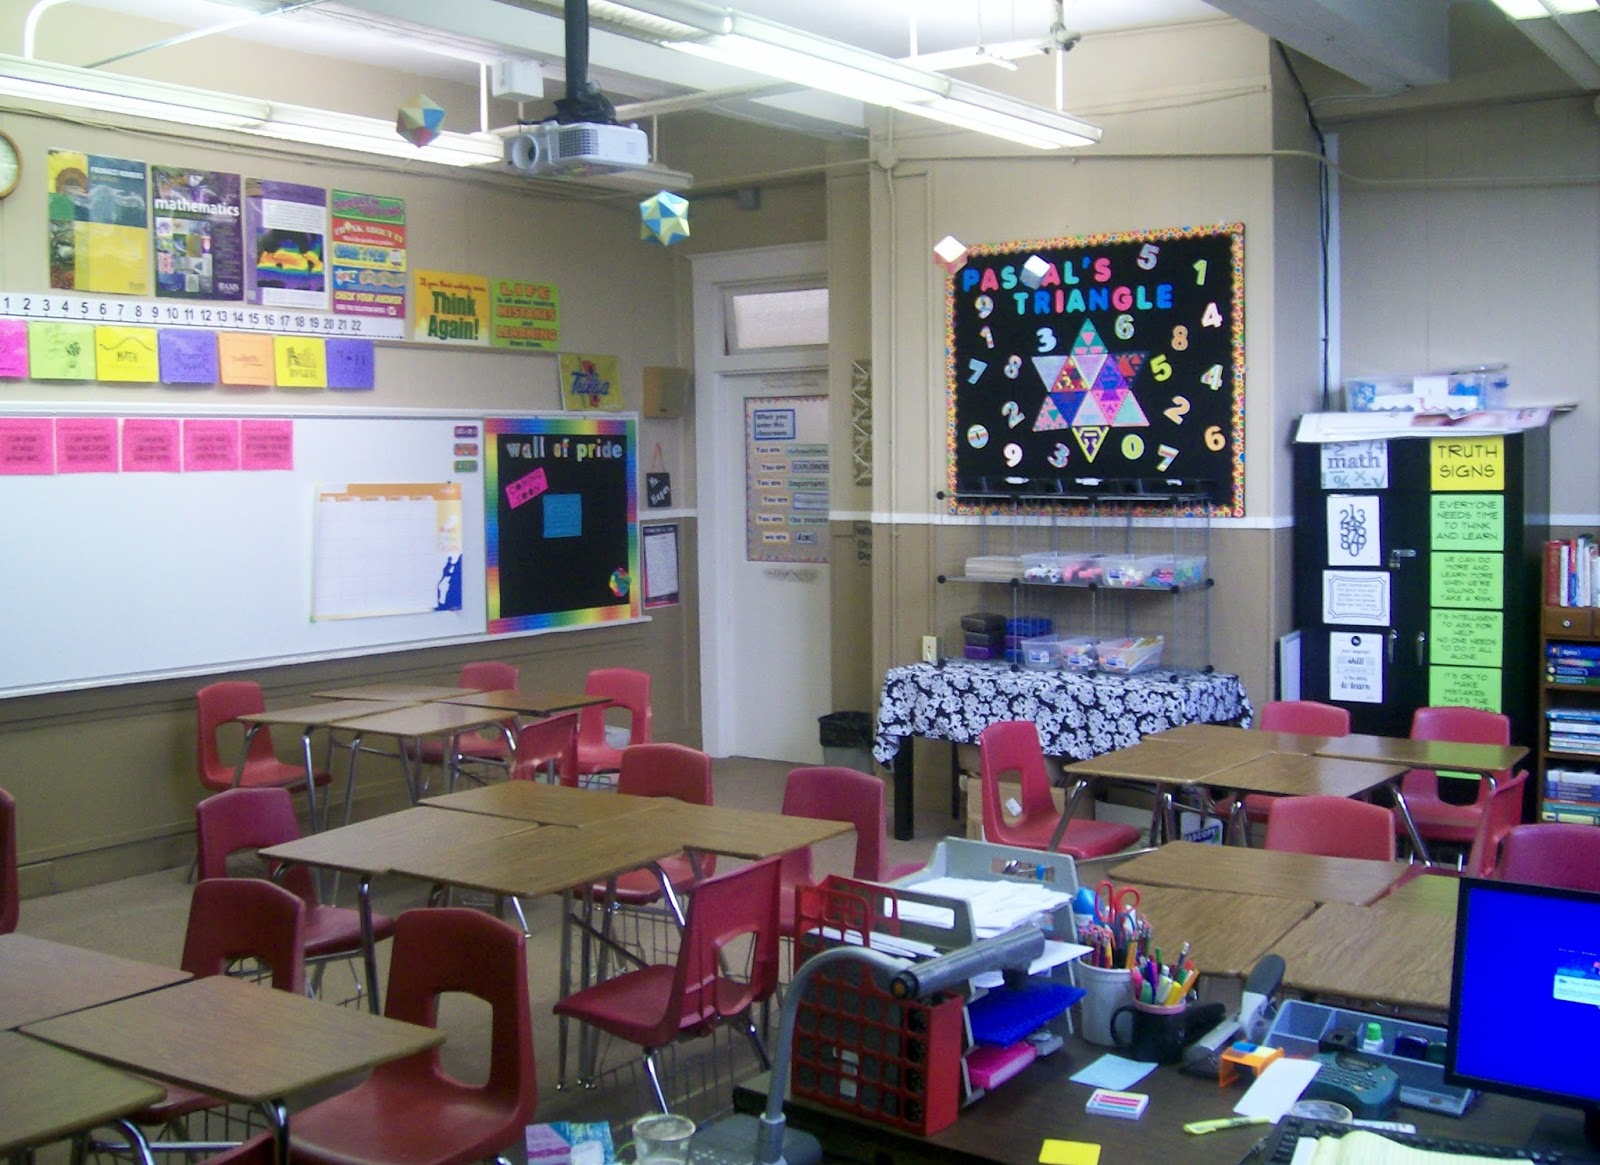 Classroom Wish List Ideas : Math love classroom pictures